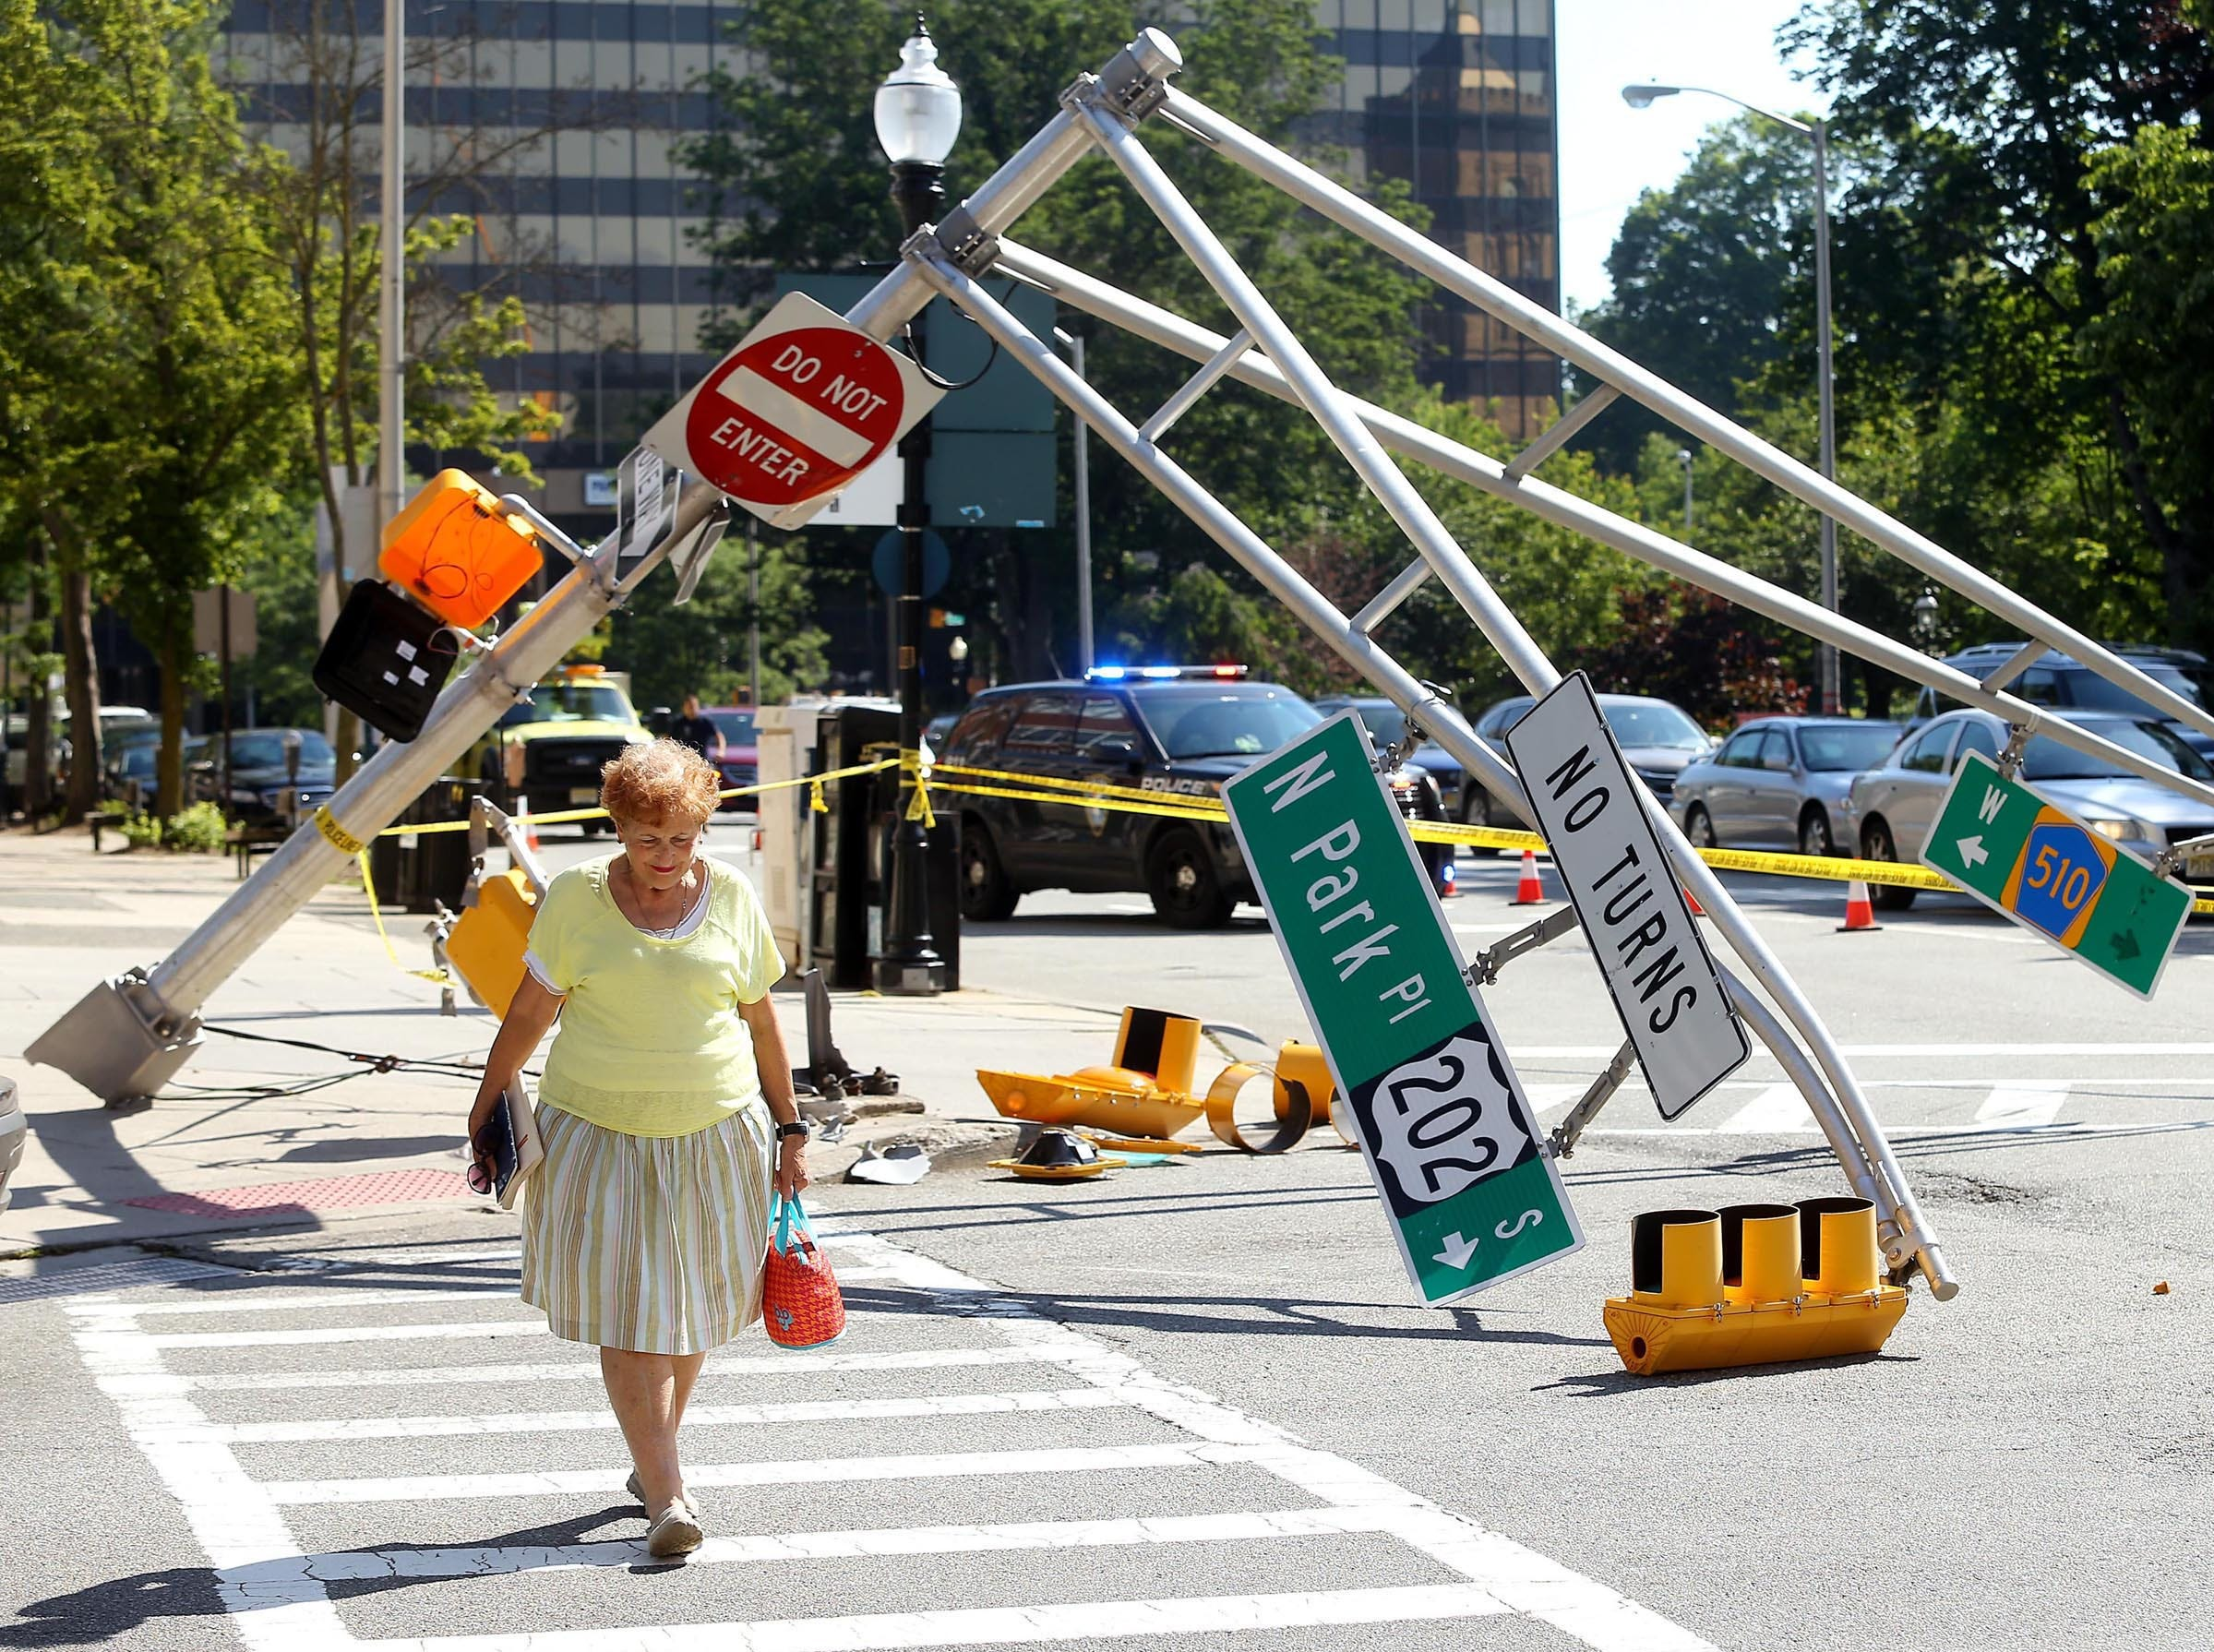 June 13, 2017--Geri Magala of Morristown crosses the street as traffic is rerouted in downtown Morristown after a truck took down a traffic light on the corner of N. Park Place and Washington Street.